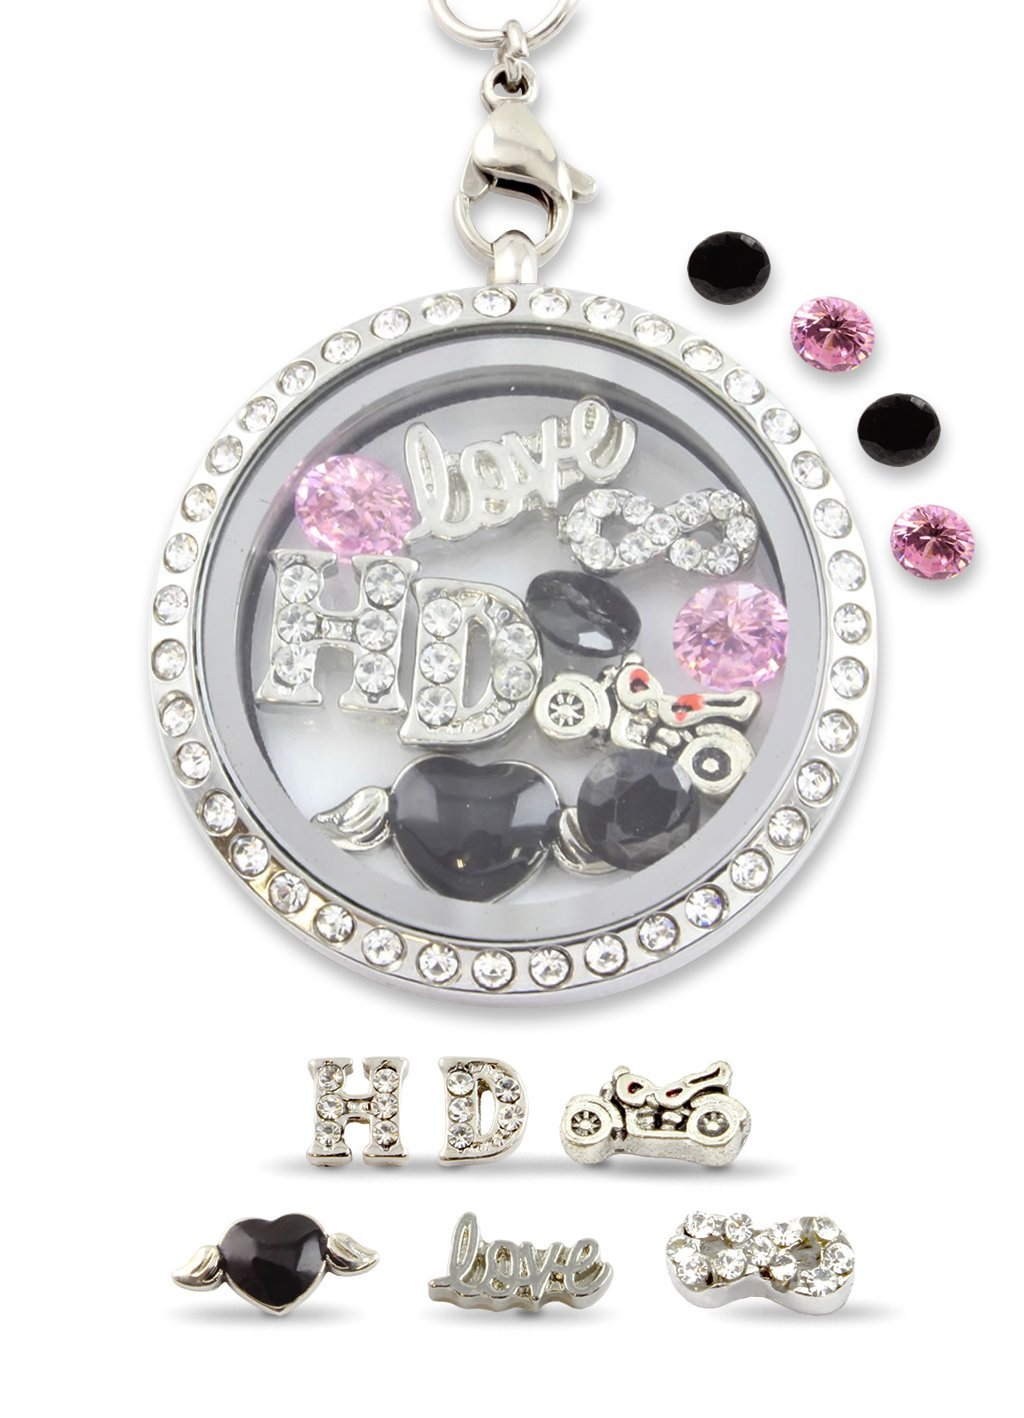 """Infinity Love Harley"" Floating Charm Living Memory Locket Magnetic Closure 30mm Stainless Steel Pendant Necklace with Pink and Black Crystal Charms"